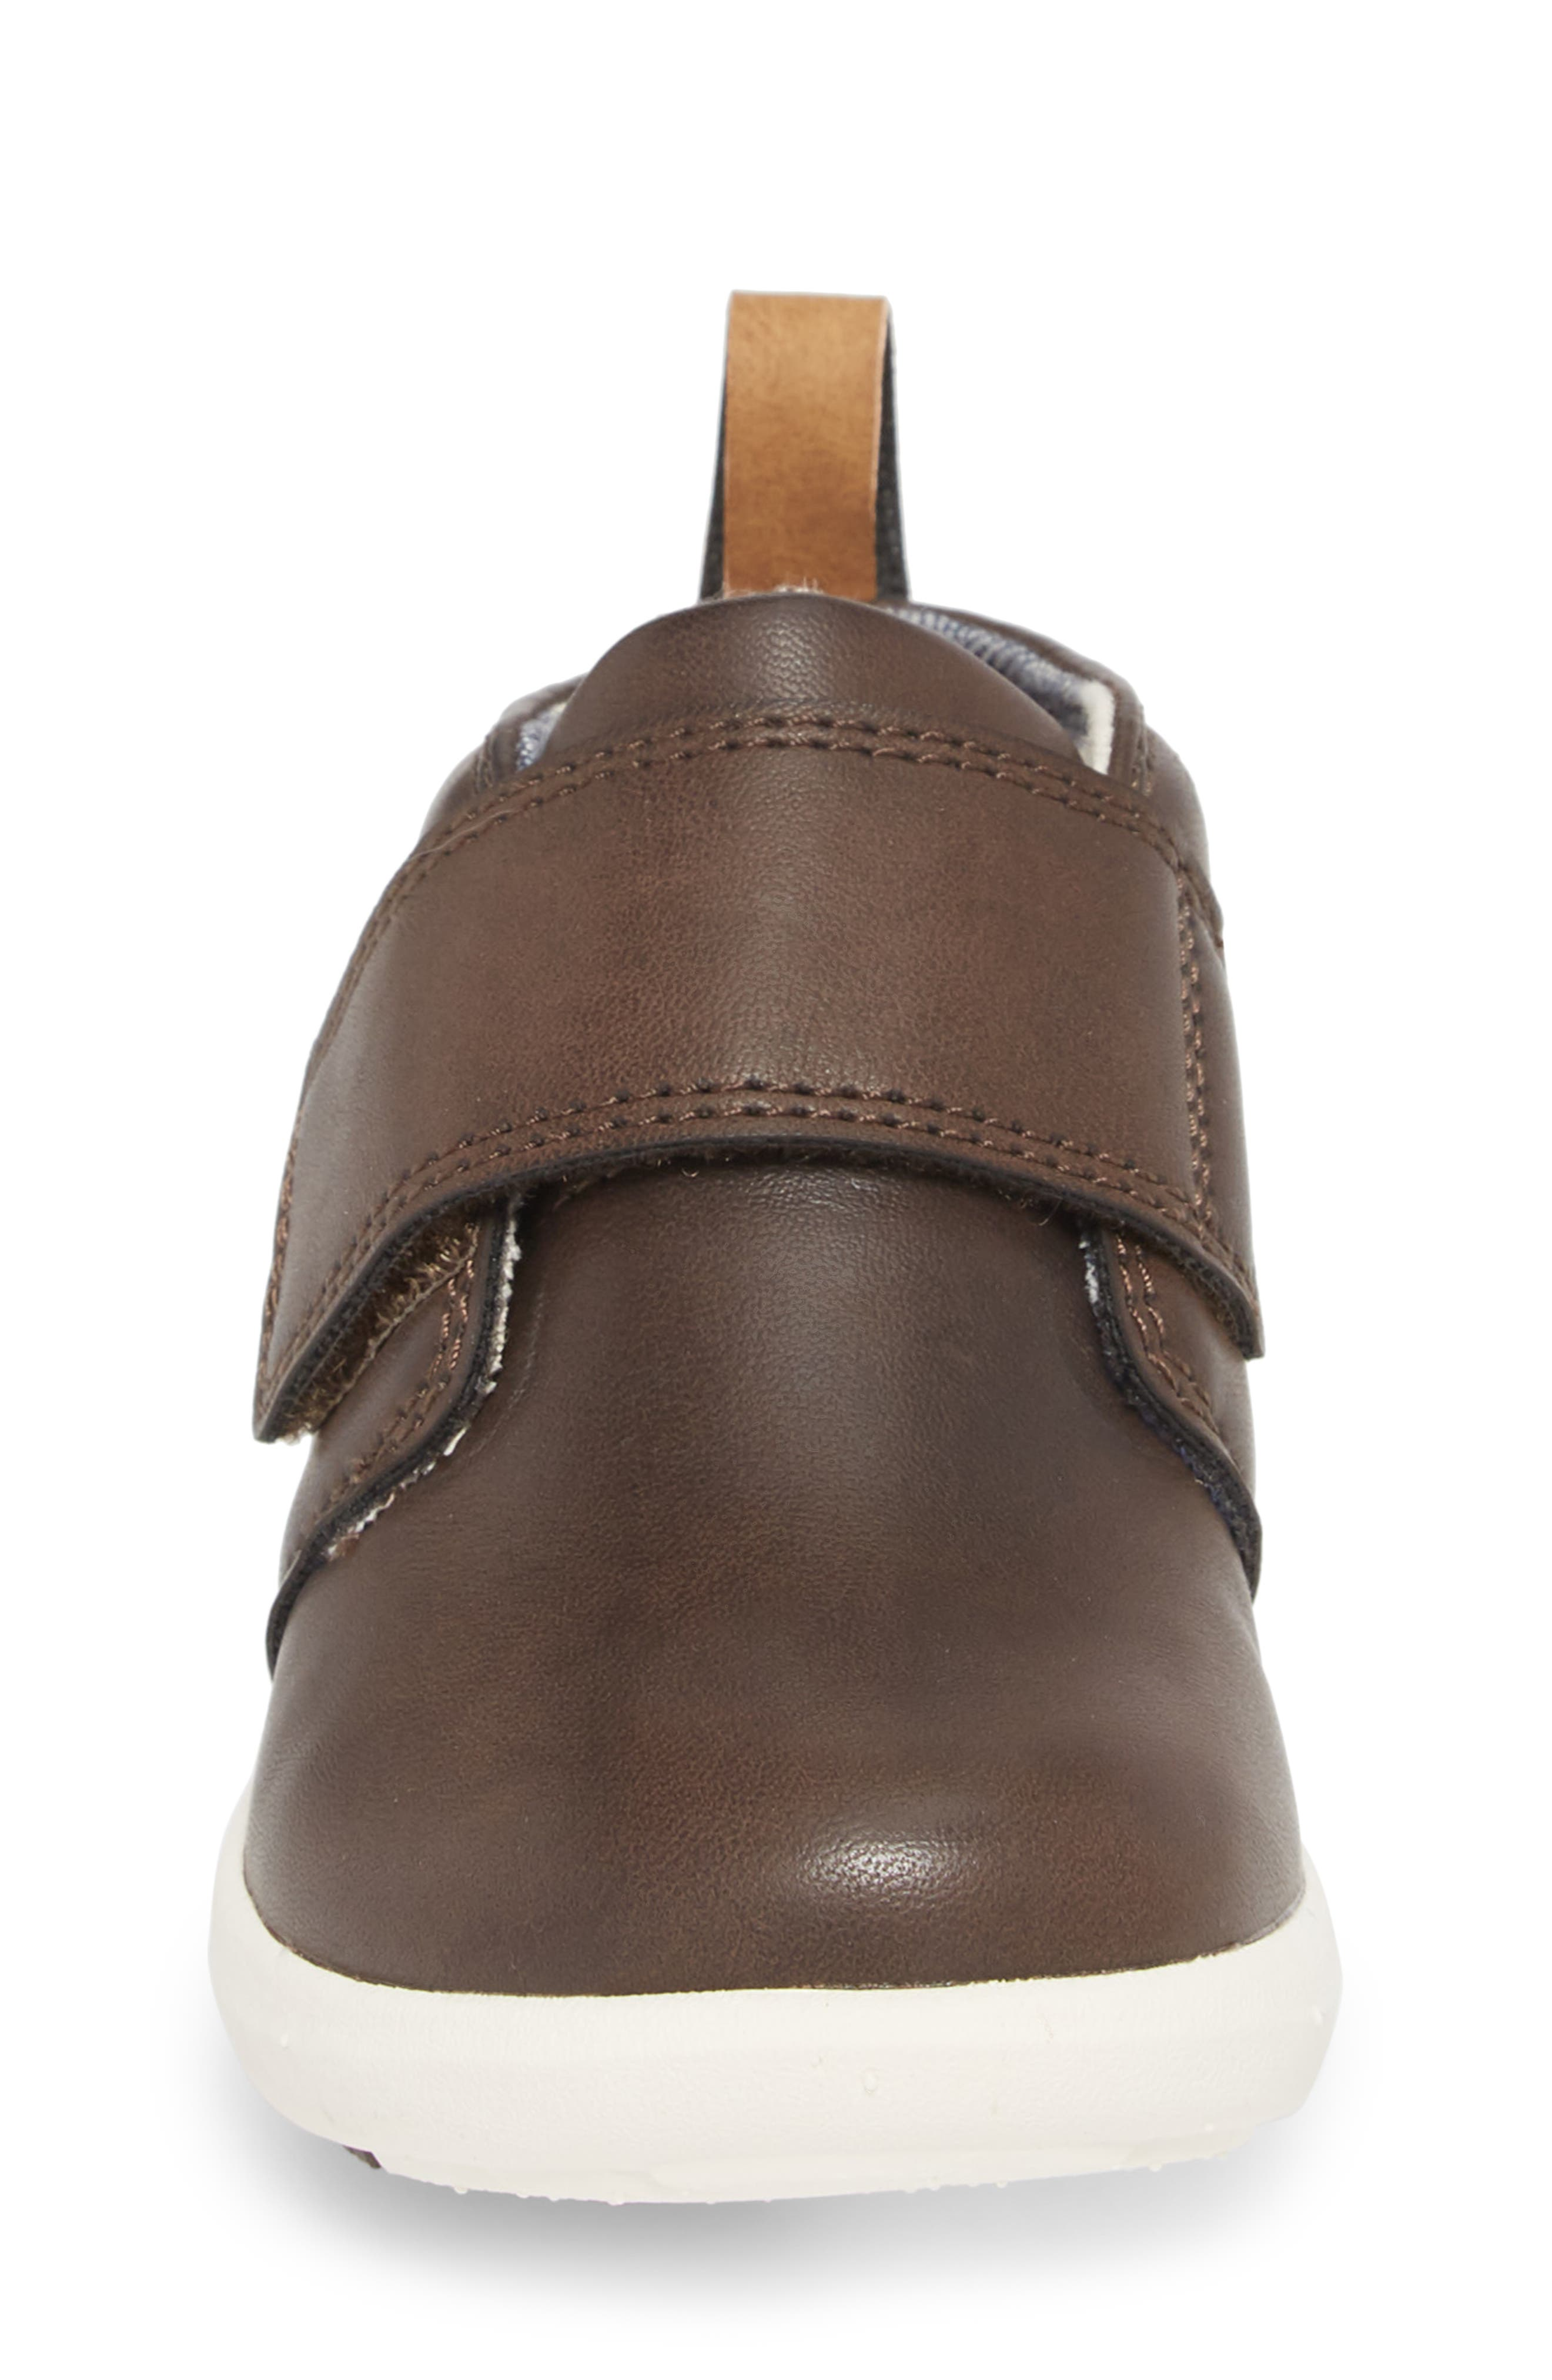 Oliver Low Bootie Sneaker,                             Alternate thumbnail 4, color,                             CHOCOLATE FAUX LEATHER